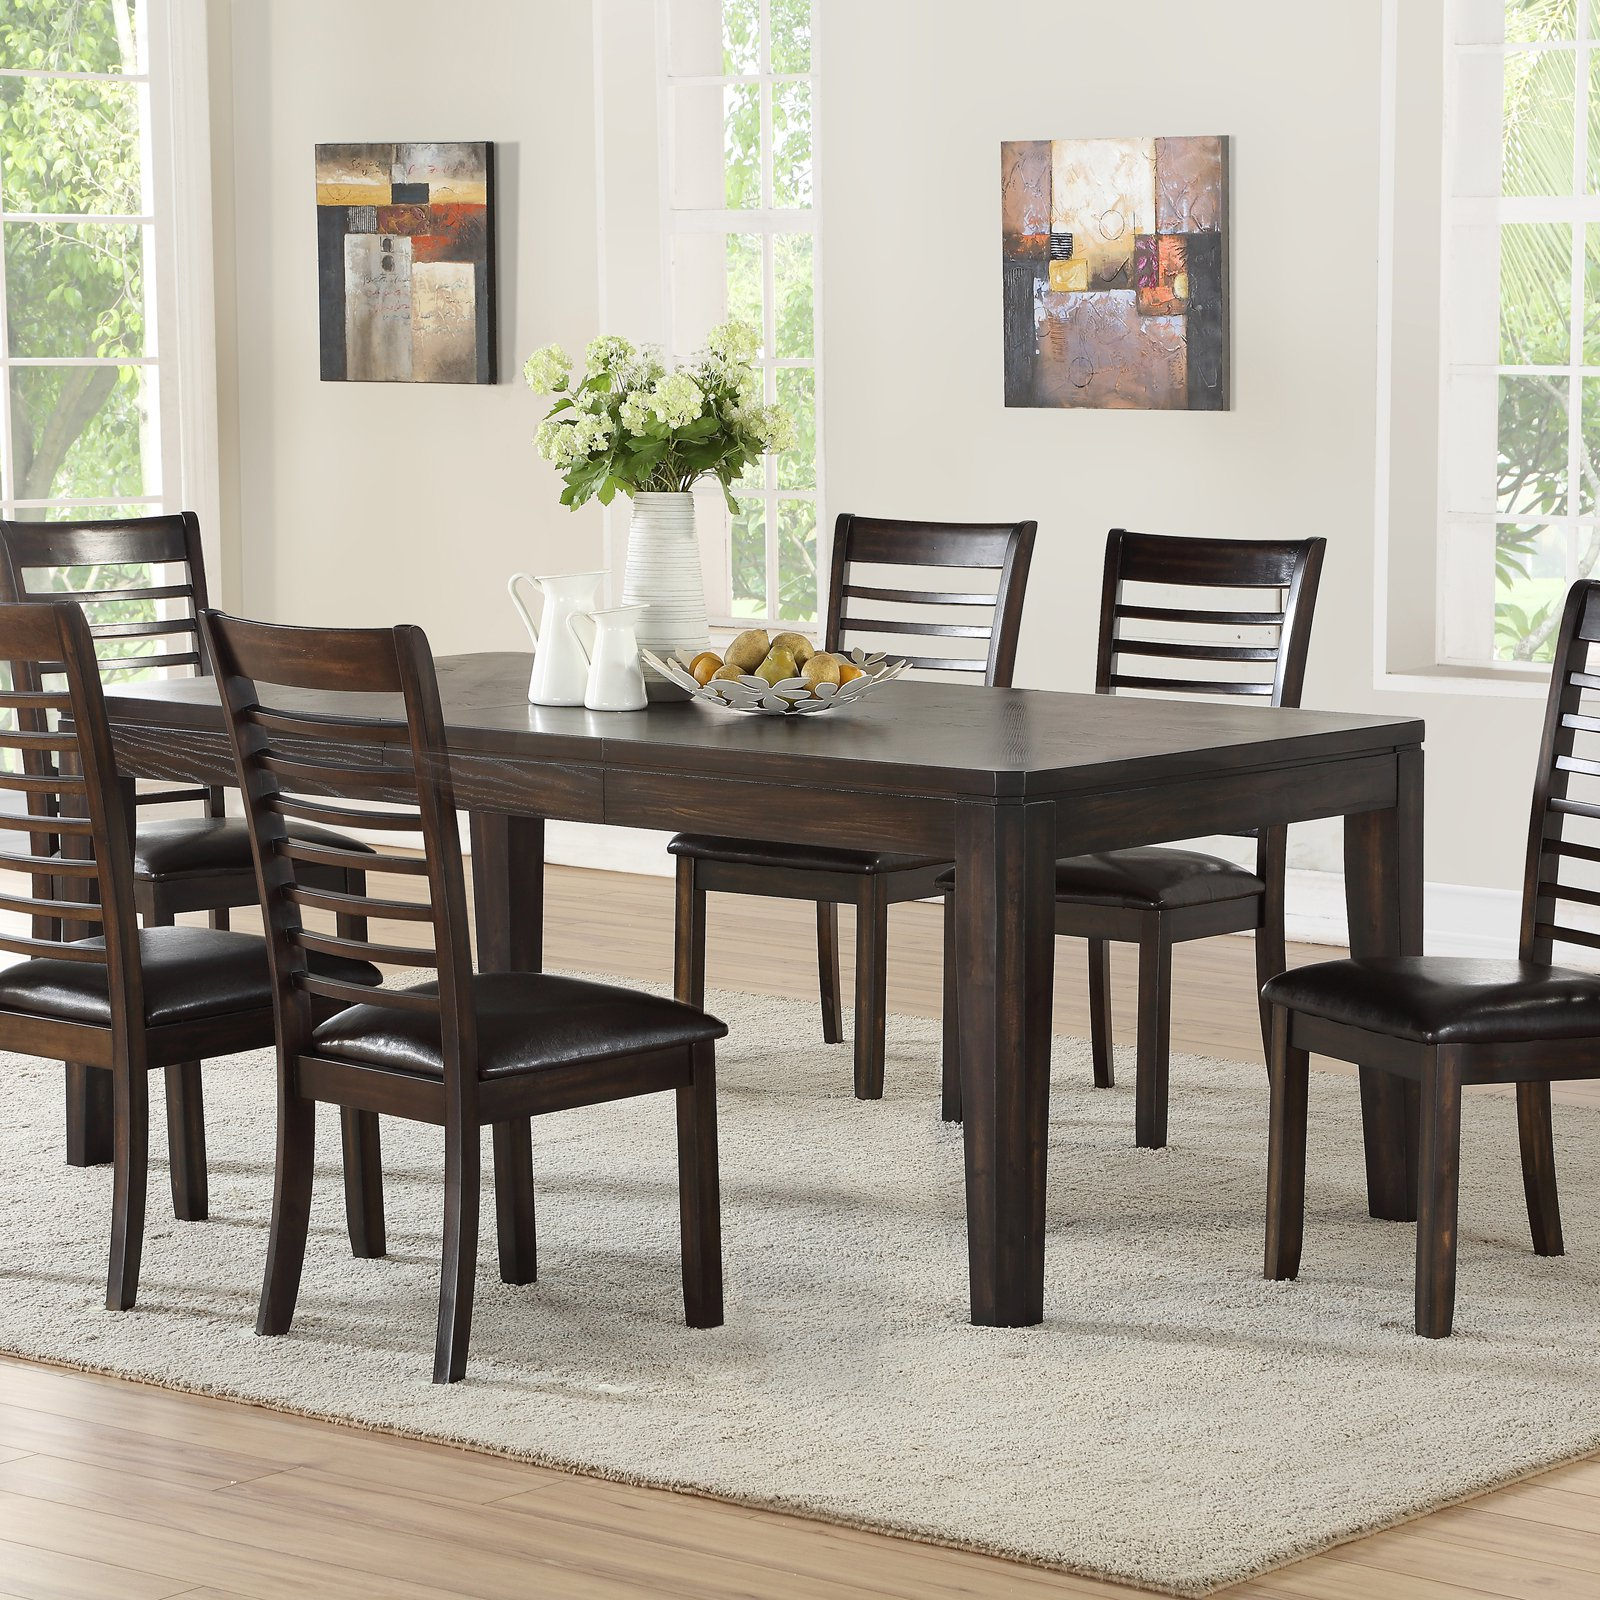 Steve Silver Co Ally 60 In Dining Table With Extension Leaf